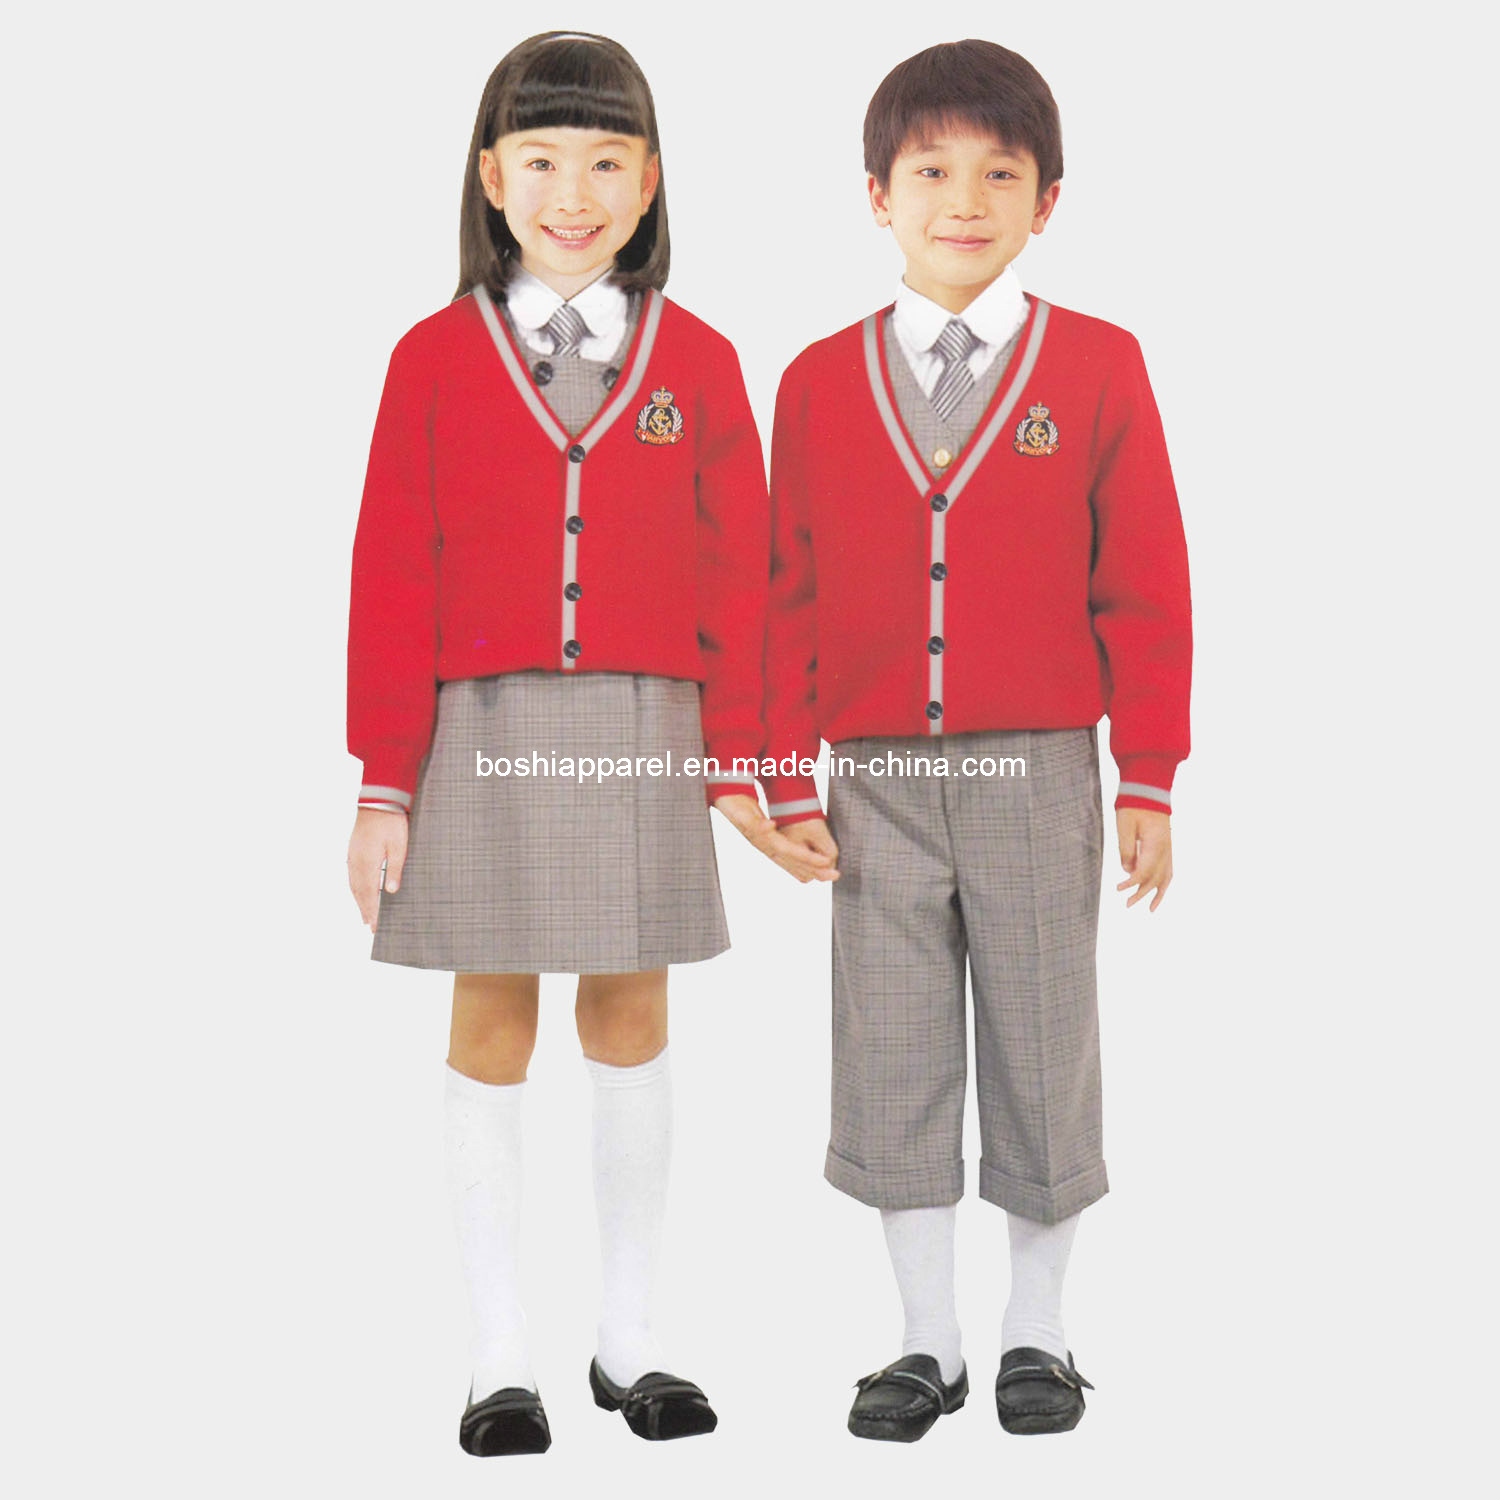 2013 Custom Design School Uniforms, Kid's Clothes (LA-X049)